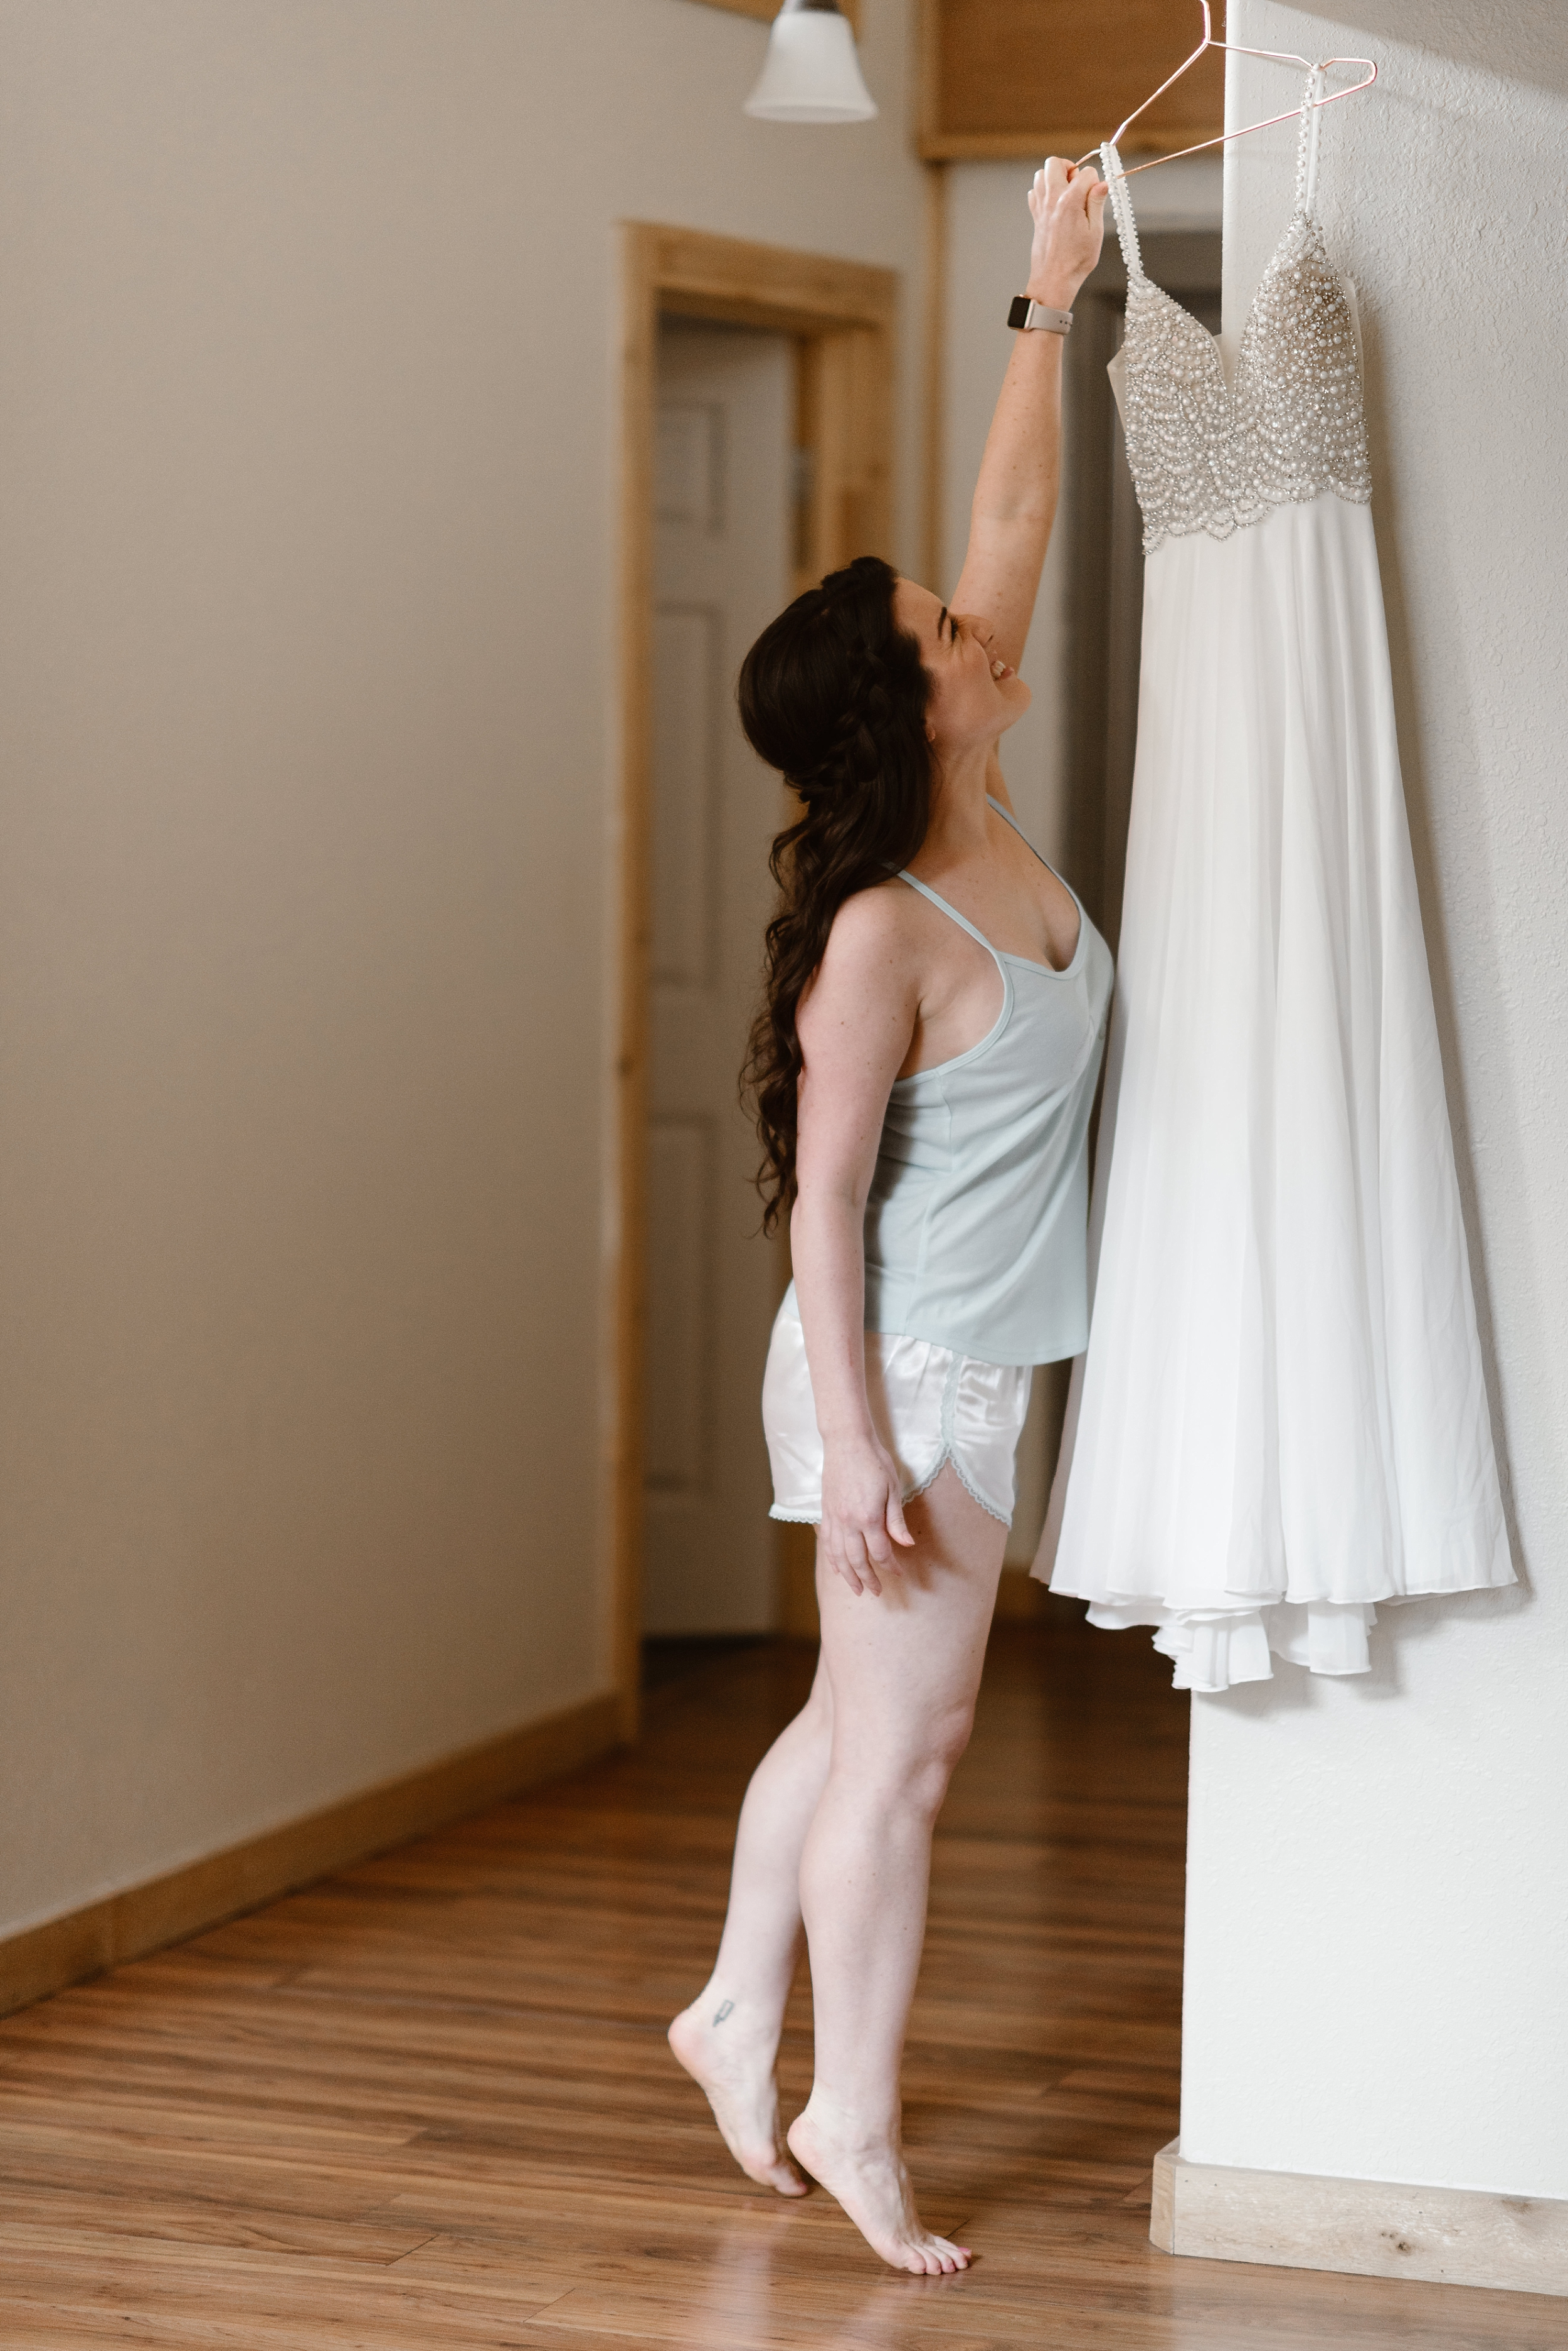 The bride, Katie, reaches up to grab her white wedding dress that's hanging on a pink hanger off of a wooden rafter in her Colorado Airbnb. Katie, in satin shorts and a light blue tank top has her hair styled and her makeup on, and as she reaches up on her tiptoes to get her dress down for her elopement ceremony, she sports a huge grin on her face.